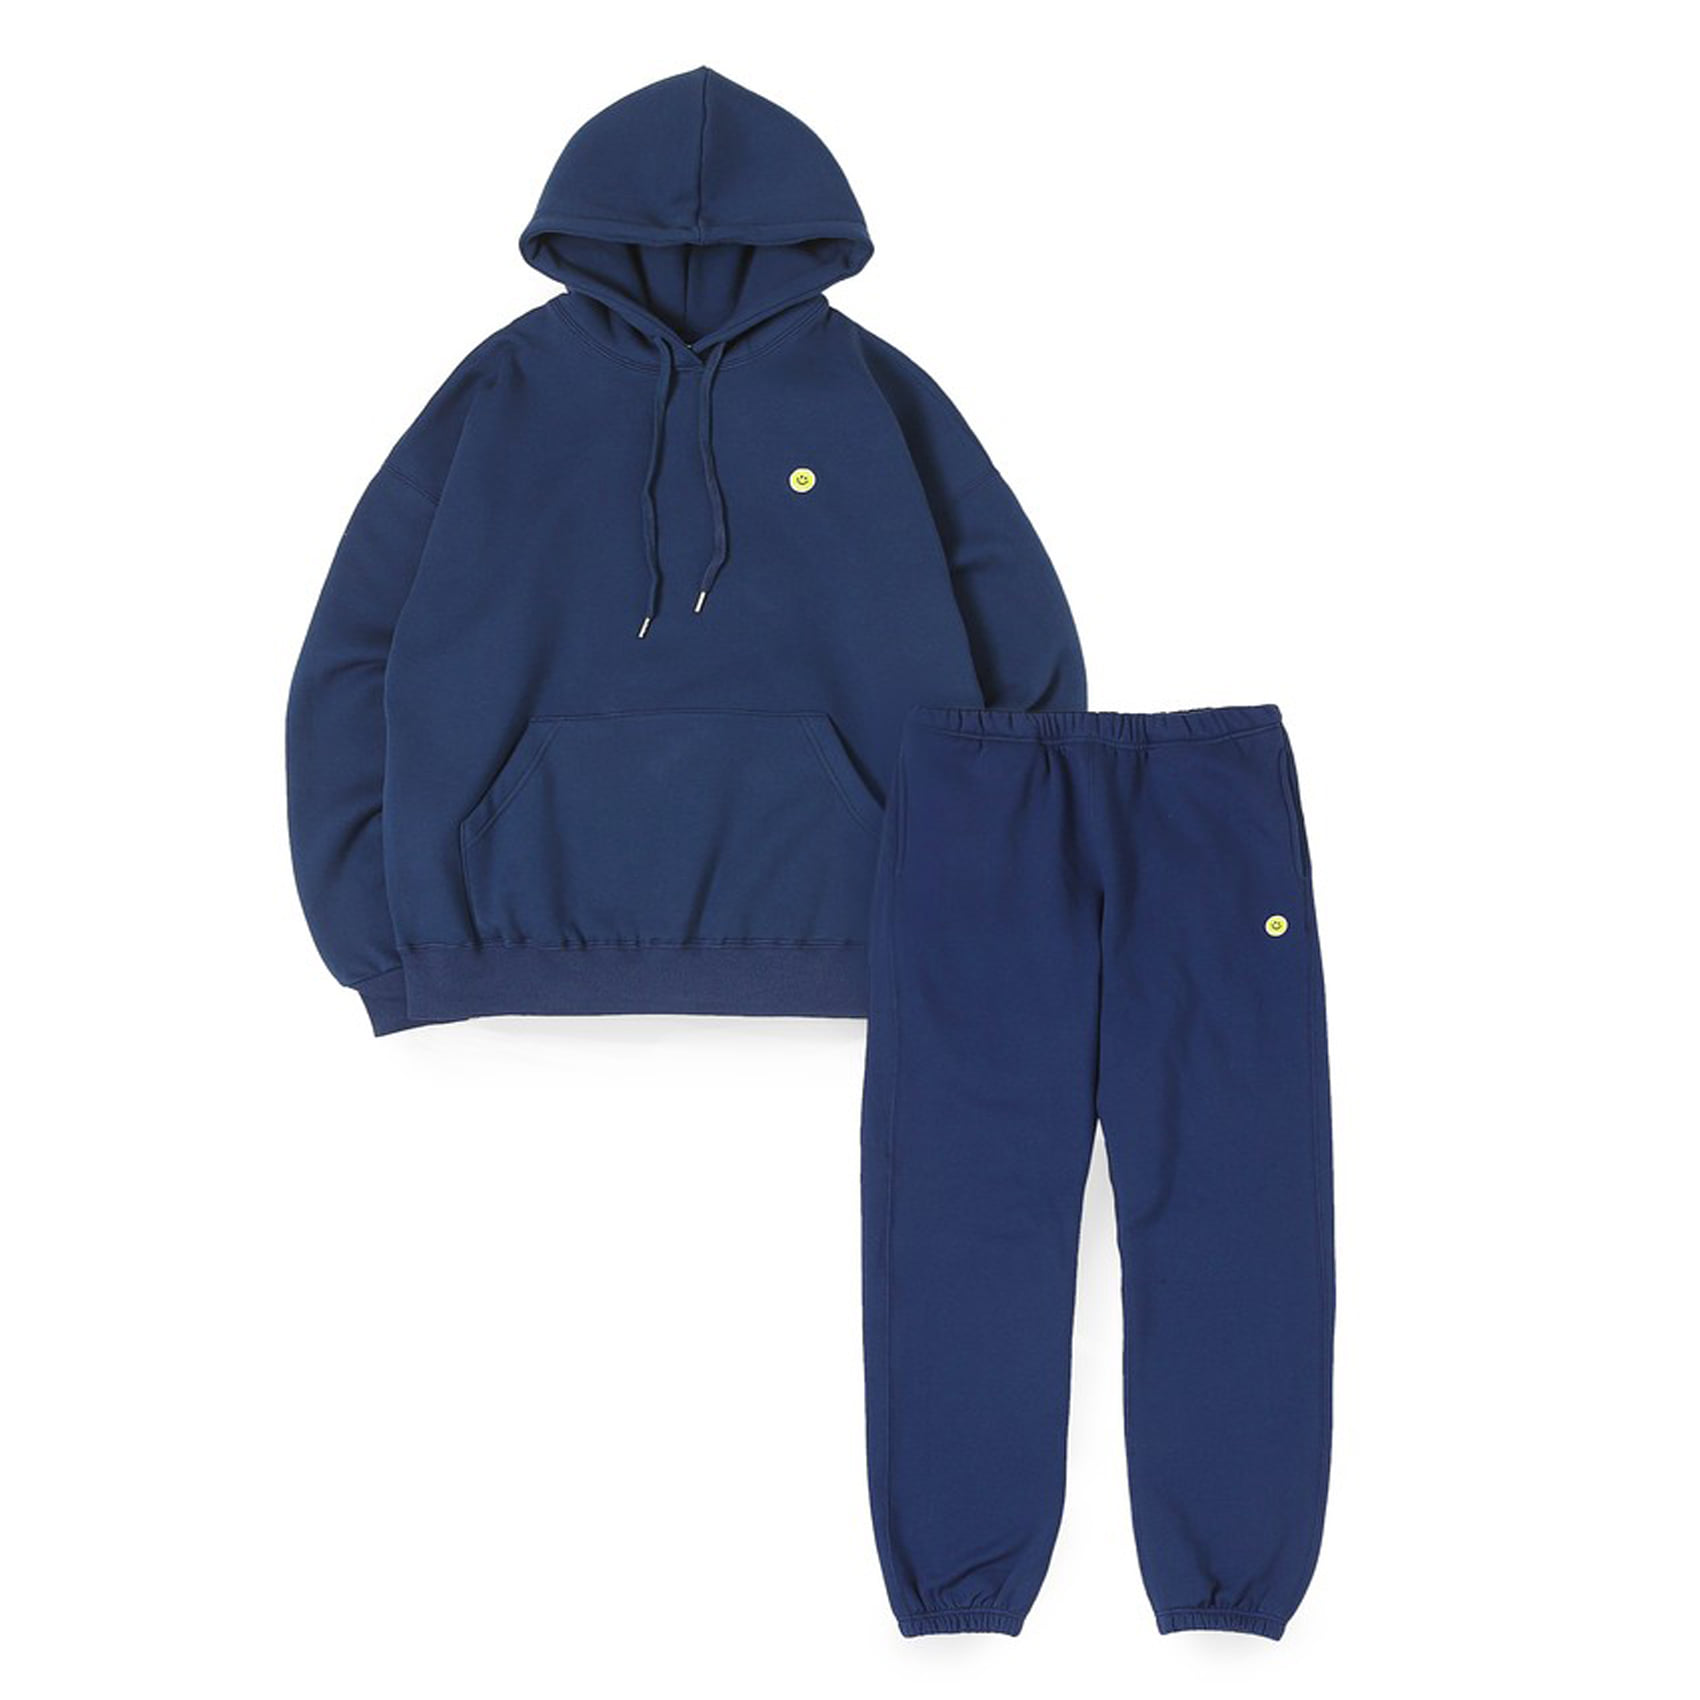 SMILE BALL SWEAT SET-UP - NAVY